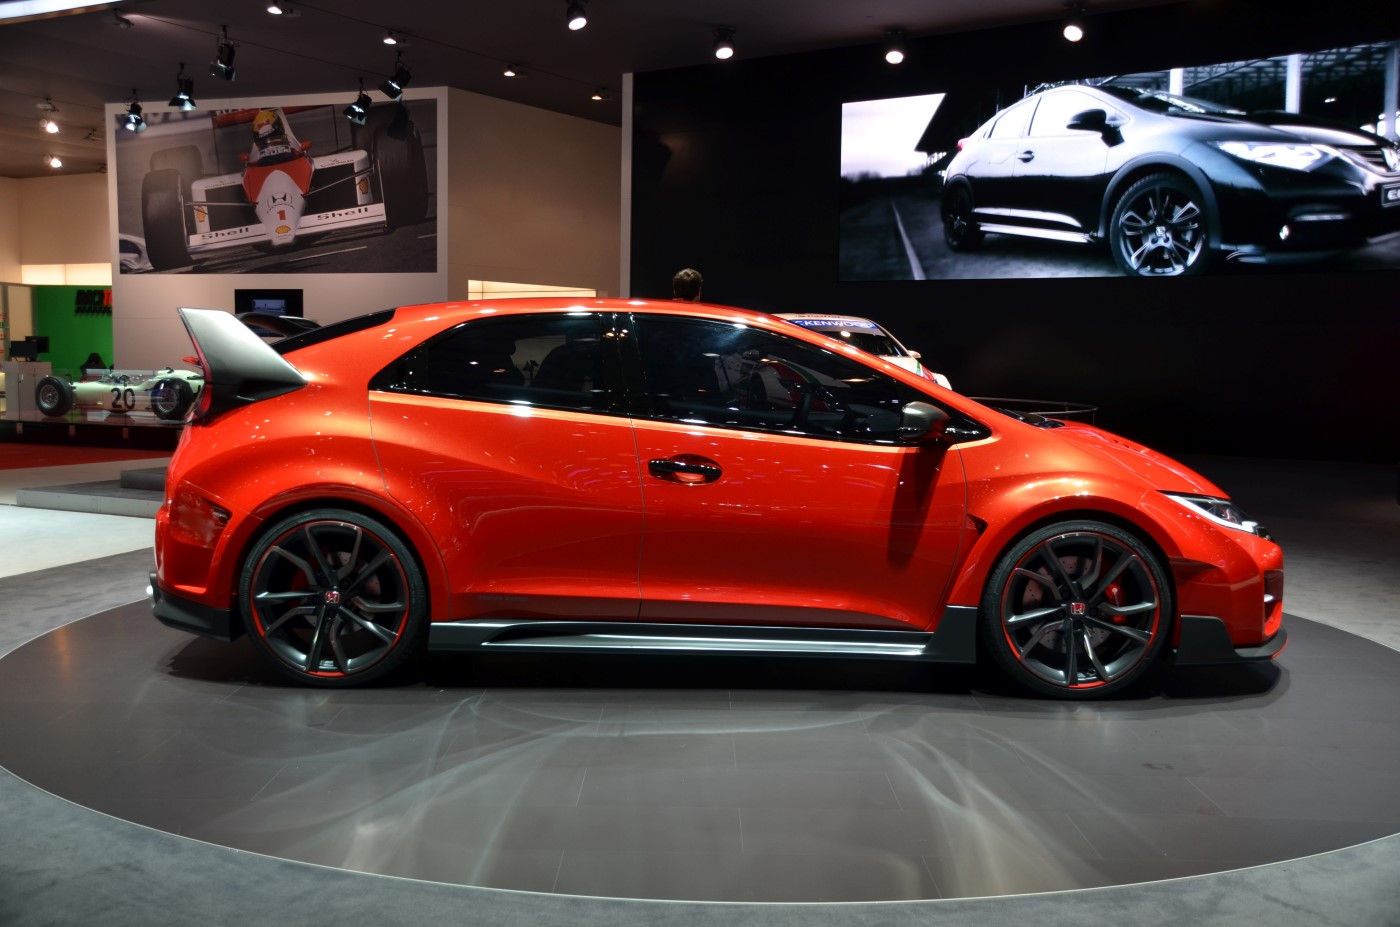 2015 Honda Civic Type R Concept Revealed In Geneva: Live Photos And ...